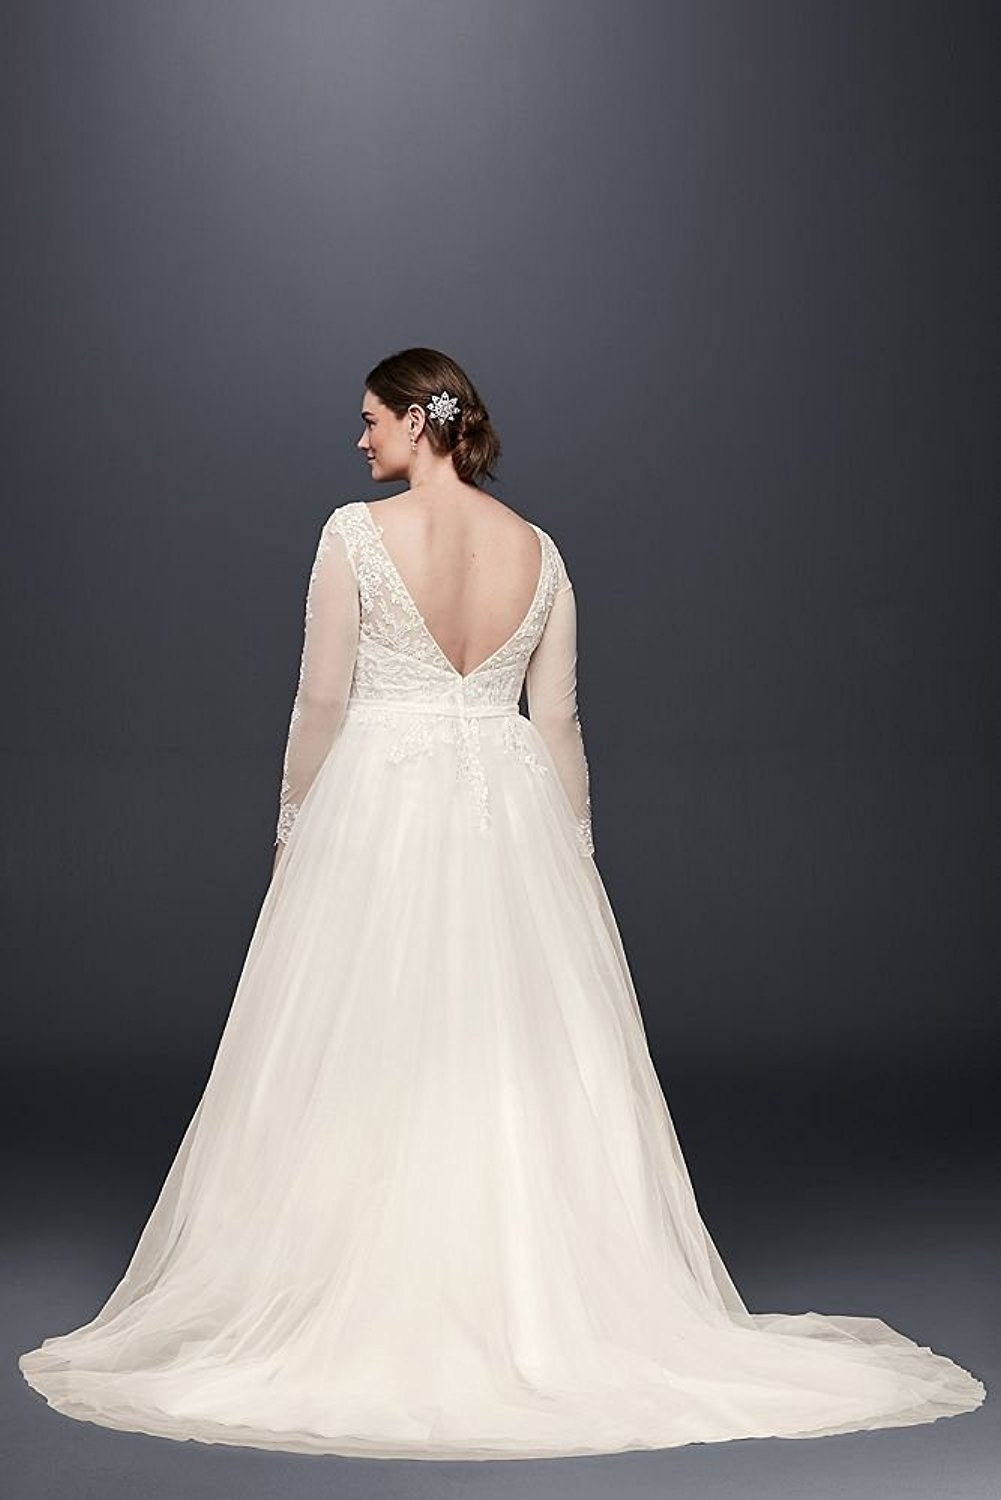 29 Of The Prettiest Wedding Dresses You\'ve Ever Seen